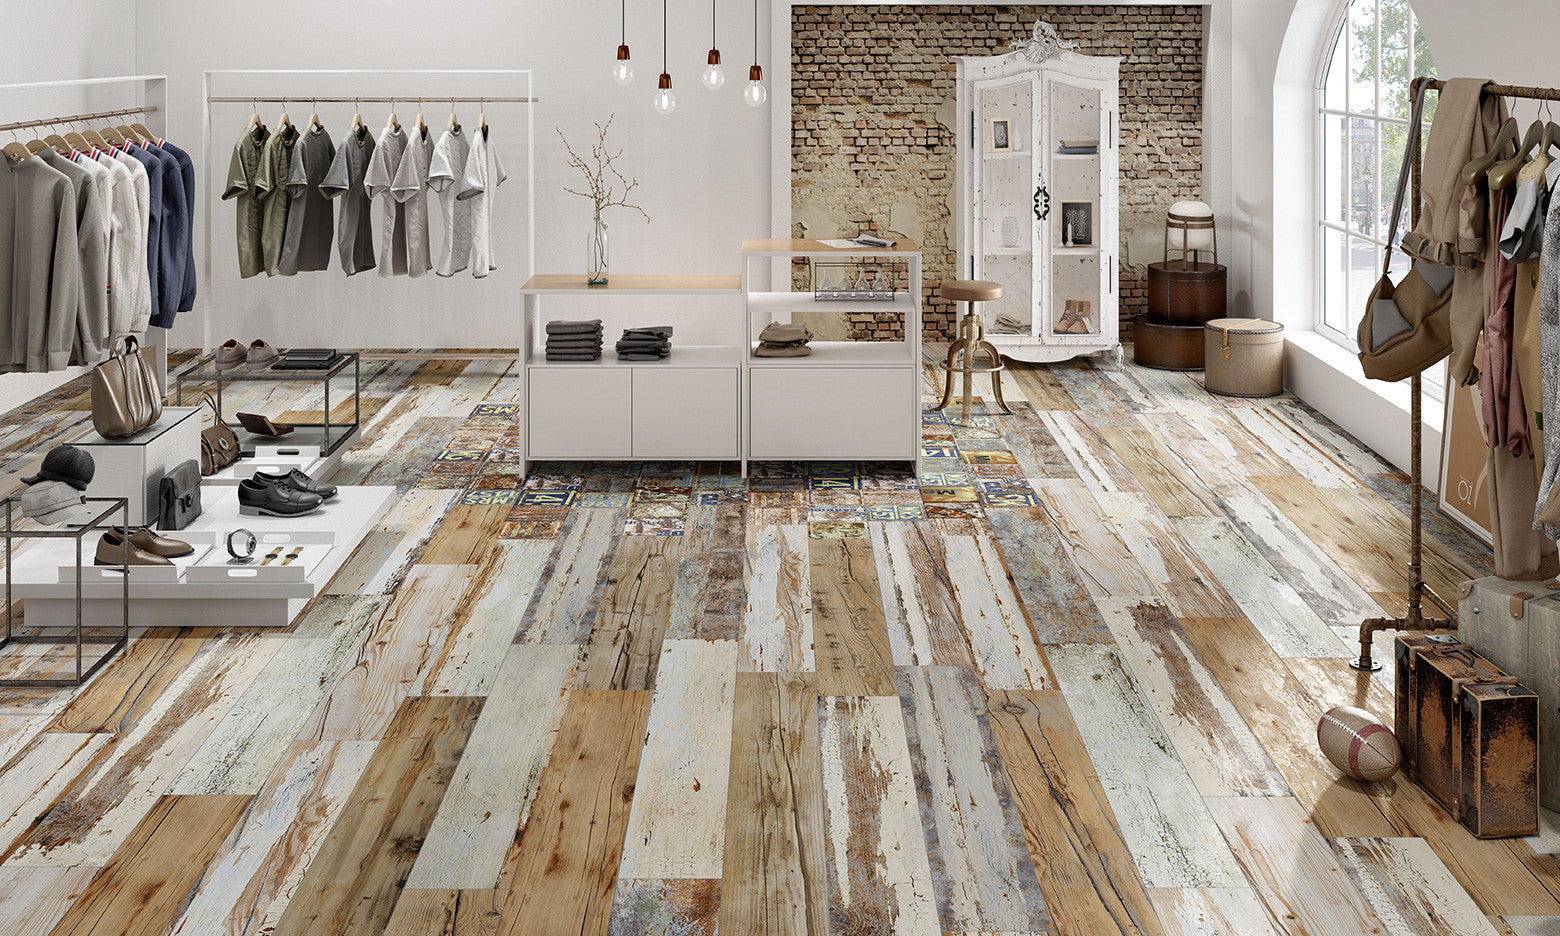 Salvage Wood Retail Shop Floor Tiles